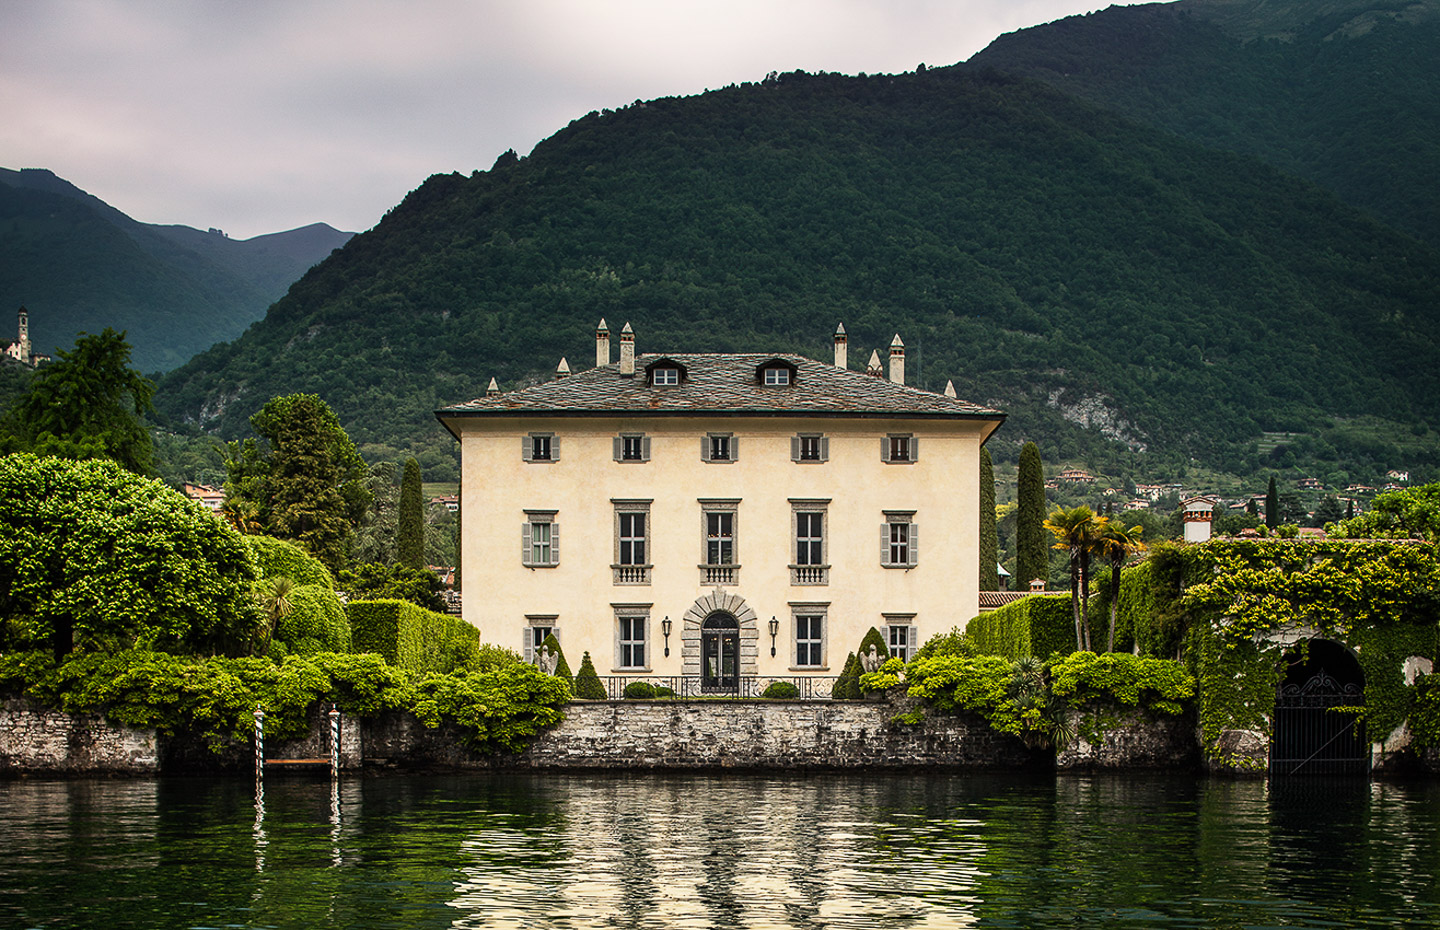 Villa Balbiano luxury property Lake Como Italy the heritage collection 17 century former residence cardinale Durini available for exclusive events accommodation rent rental event boat access service